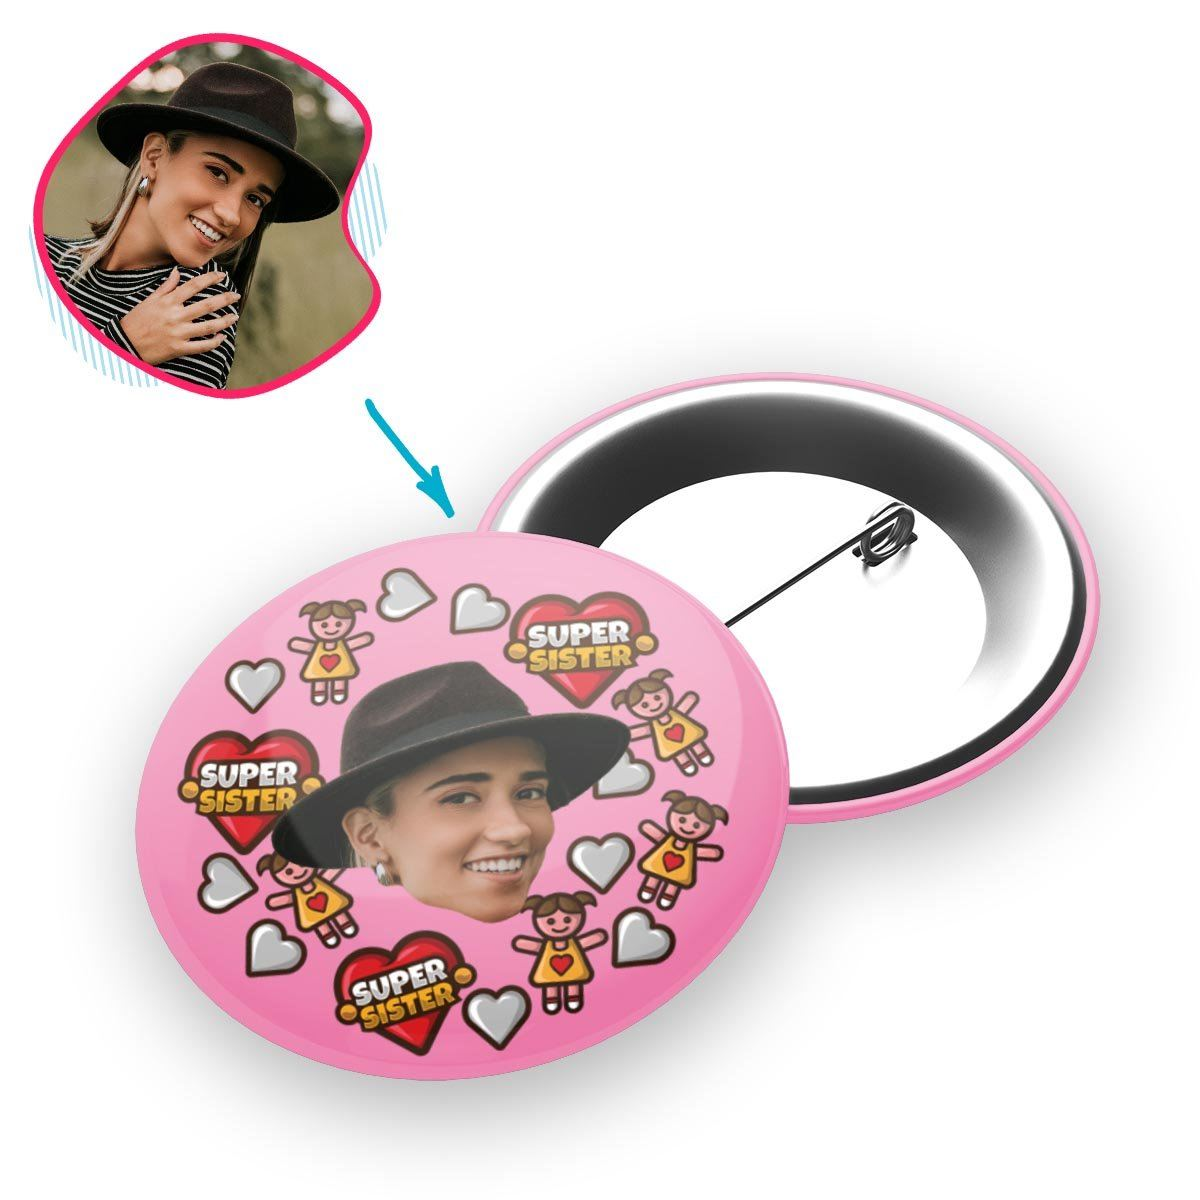 pink Super Sister pin personalized with photo of face printed on it